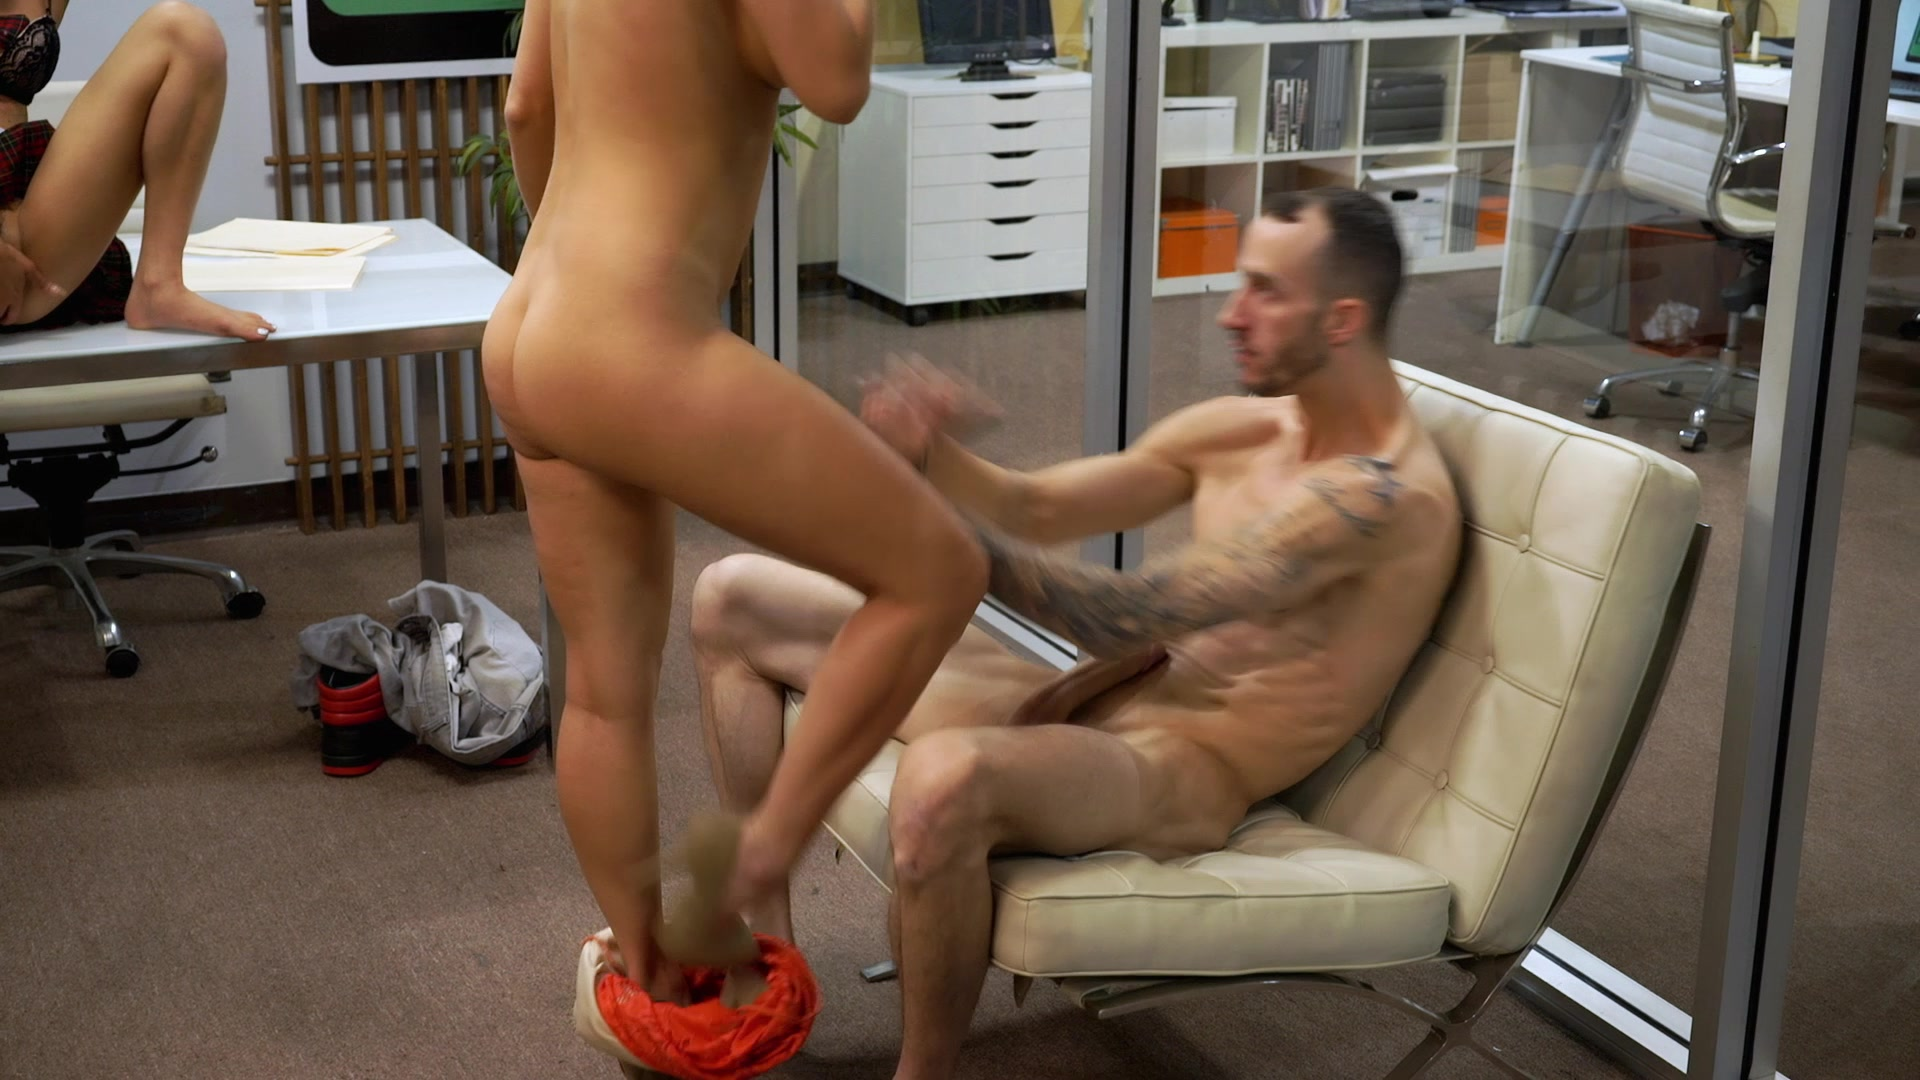 Scene with Katie Morgan and Kimberly Chi - image 17 out of 20